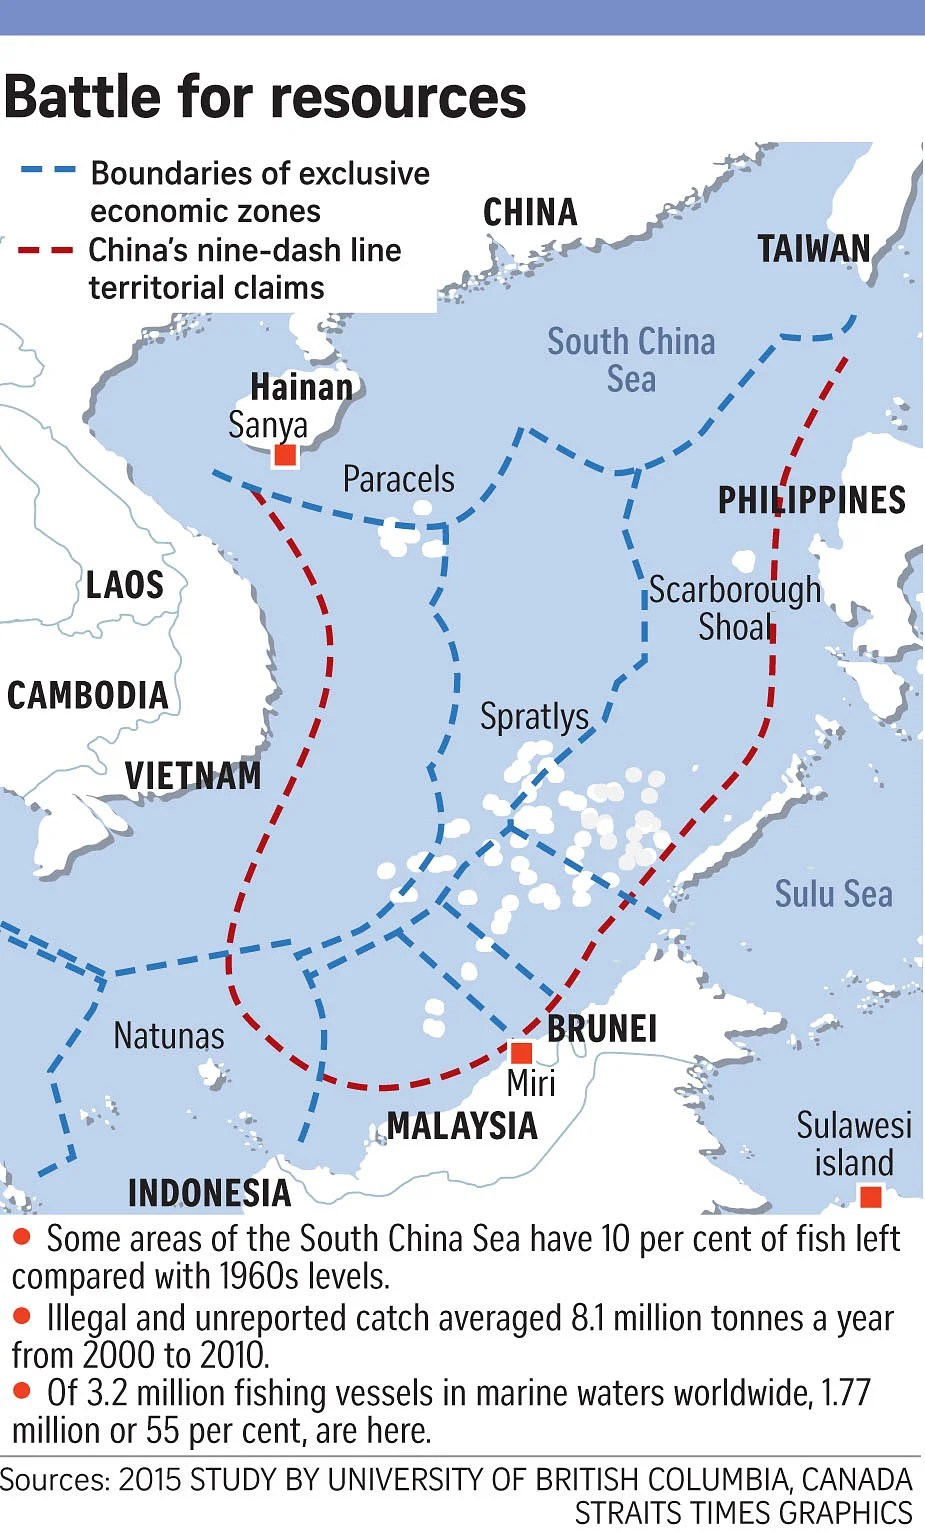 South China Sea - Part One: Fish Wars. Asia News & Top Stories - The Straits Times